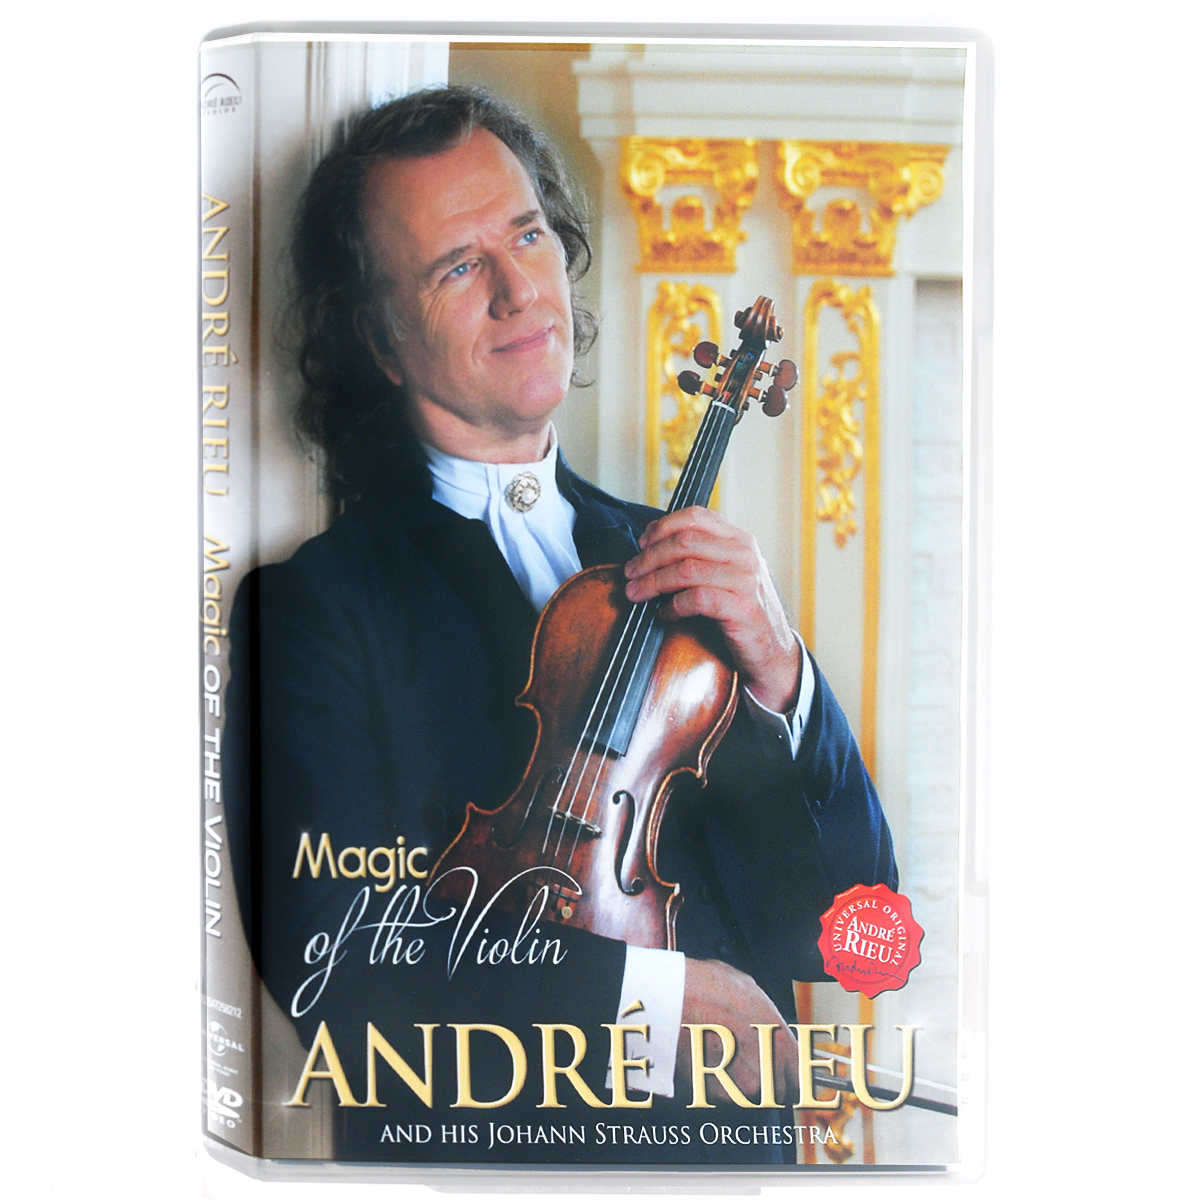 Andre Rieu: Magic Of The Violin andre correia sousa computer assisted diagnosis of cancerous lesions in chromoendoscopy